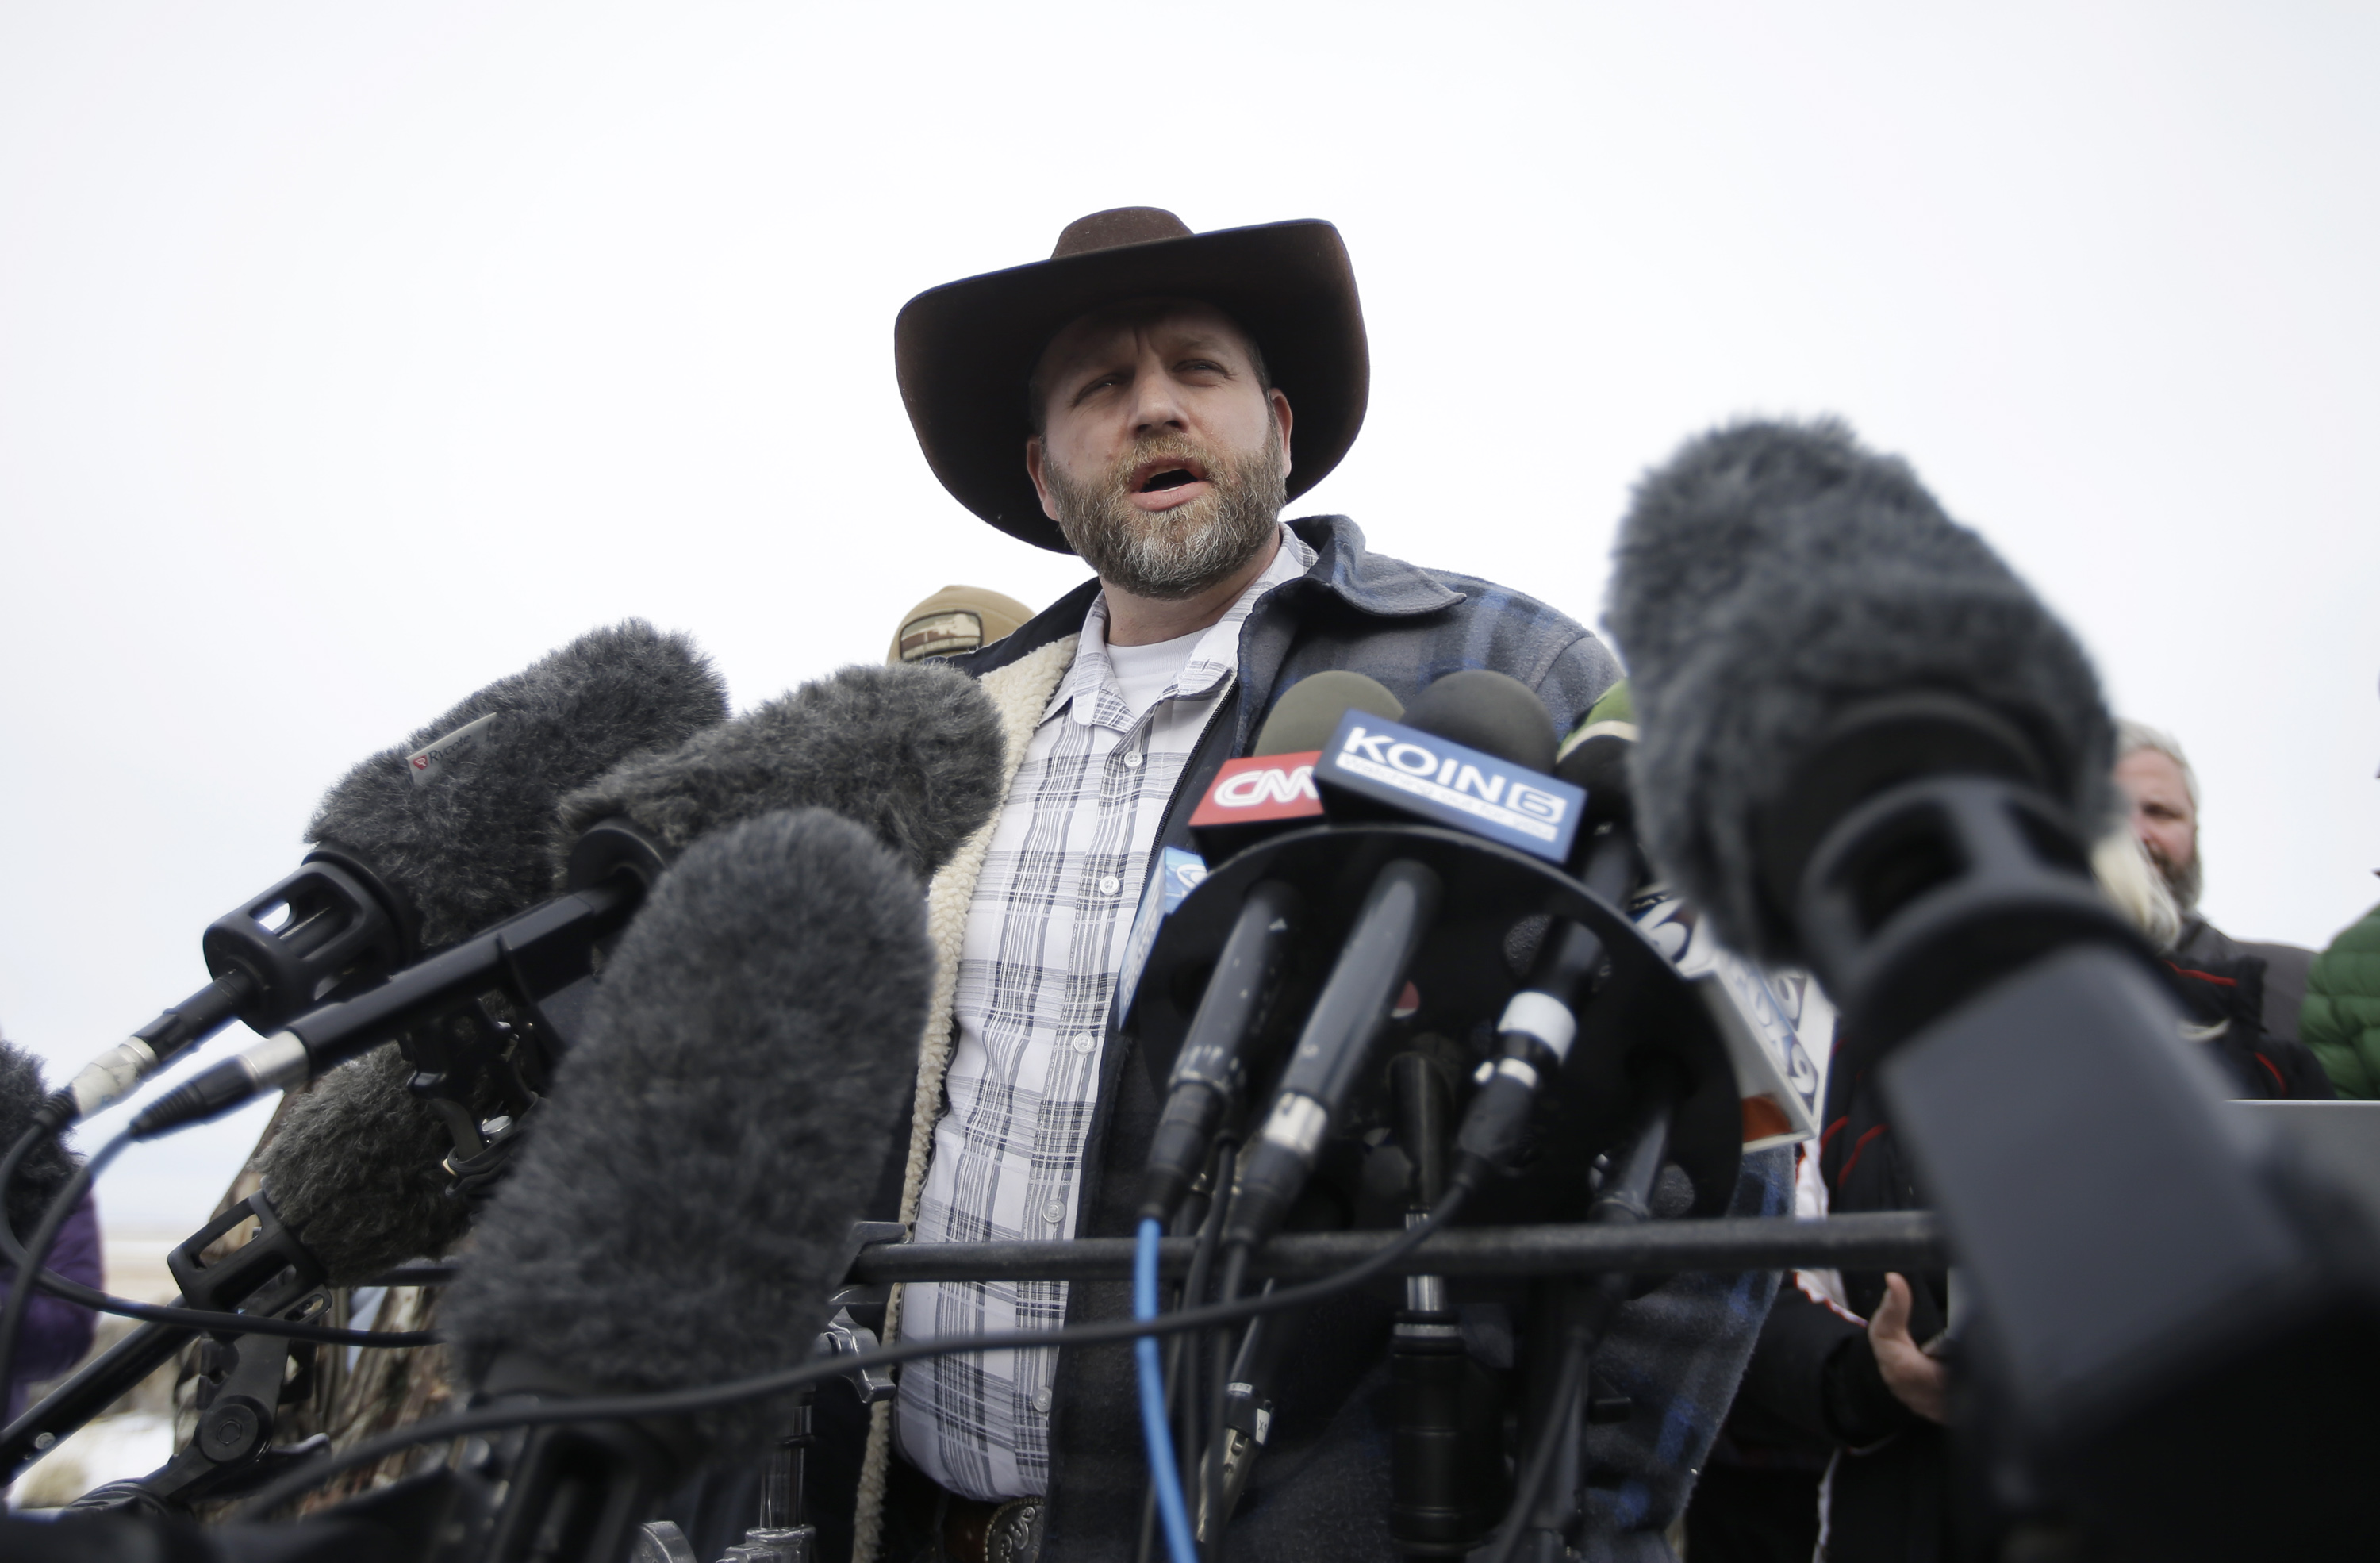 Ammon Bundy, one of the sons of Nevada rancher Cliven Bundy, speaks with reporters during a news conference at Malheur National Wildlife Refuge headquarters on Jan. 4, 2016, near Burns, Ore.